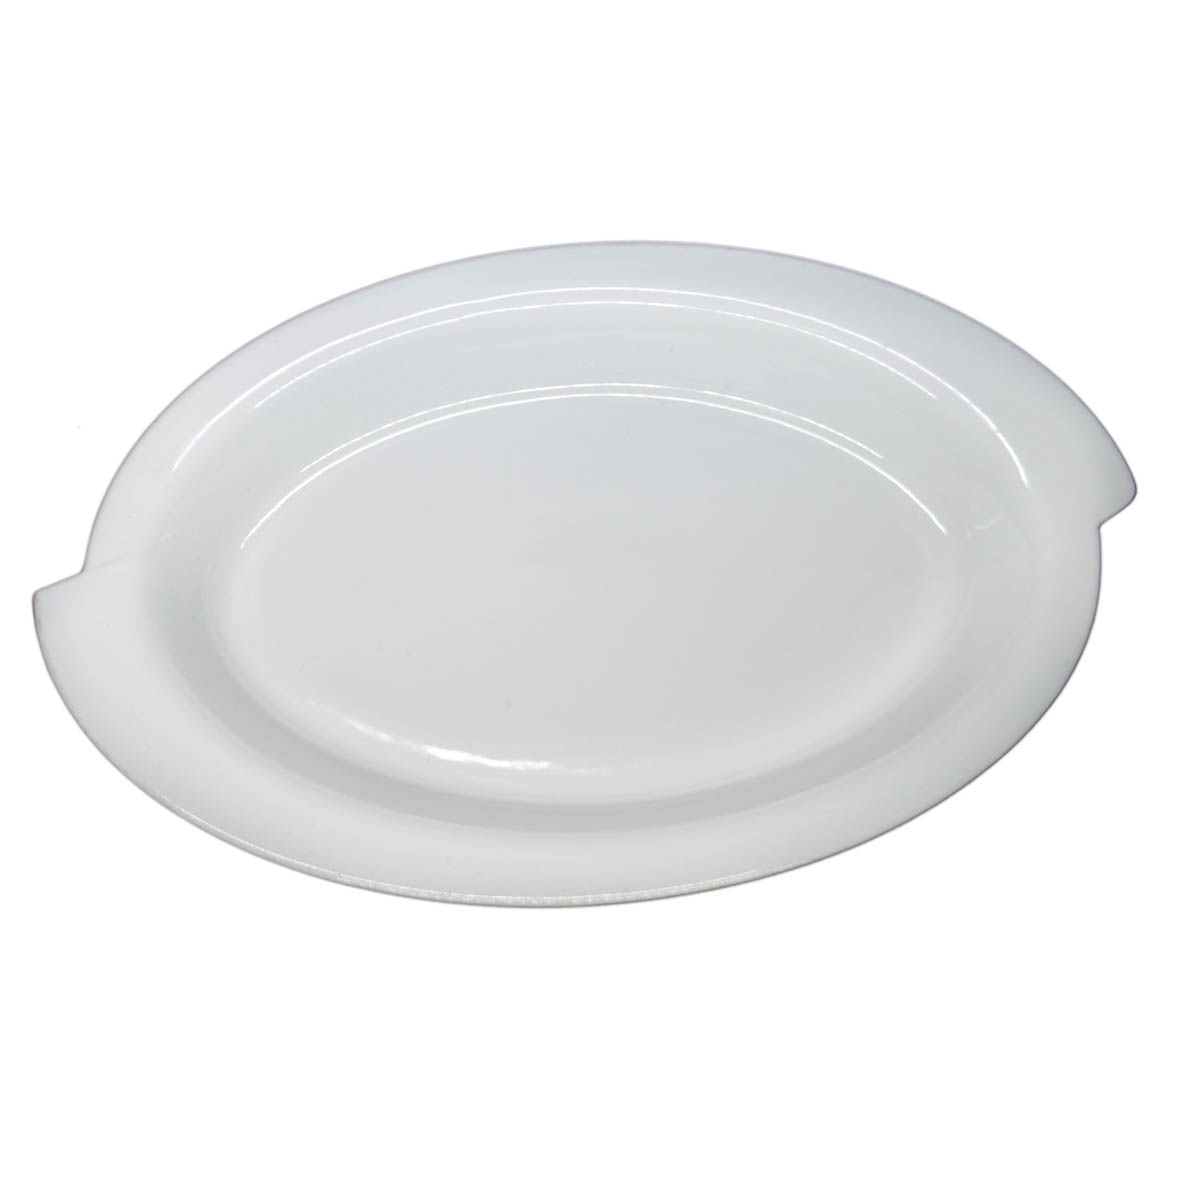 Travessa de Porcelana Oval Borda S 59x32,5x7